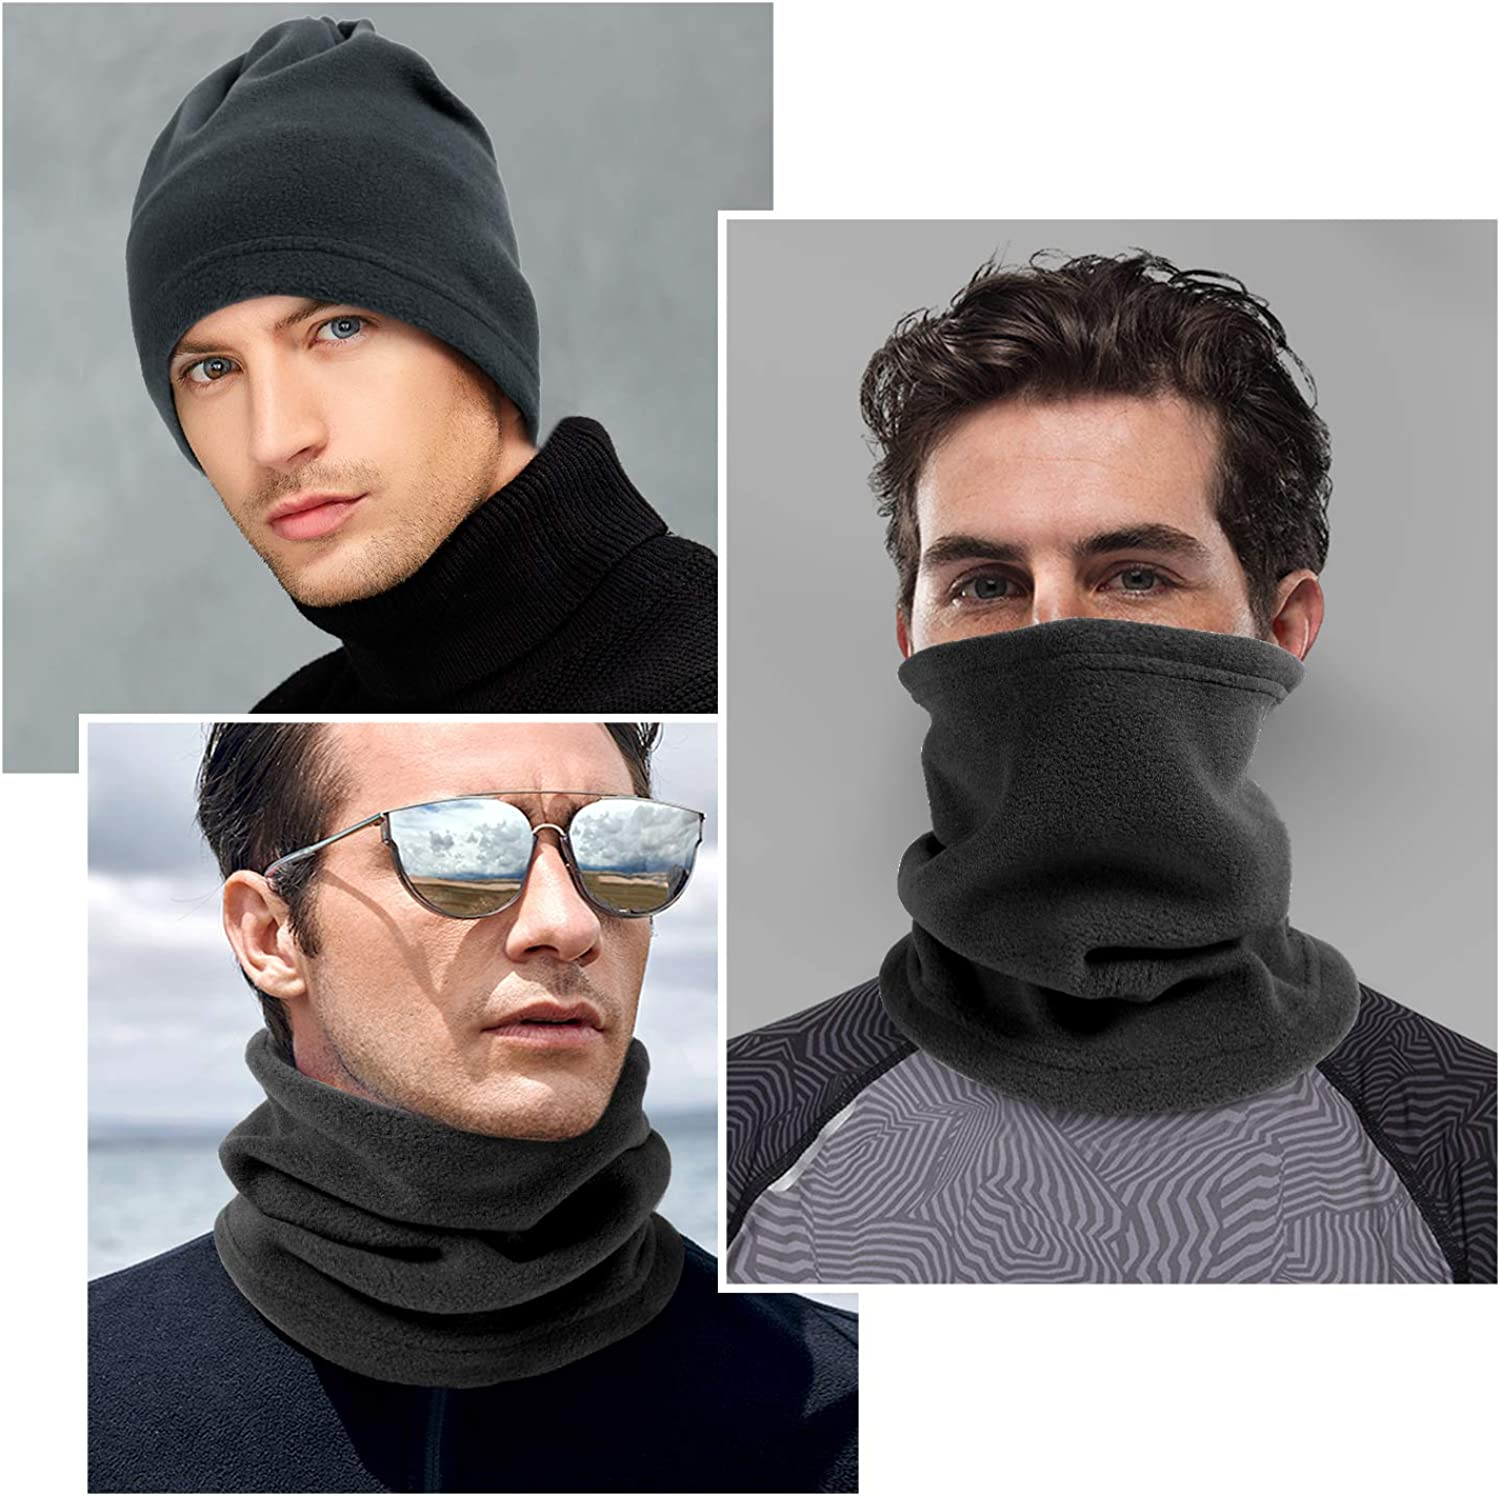 Fleece Ear Warmers Headband Winter Neck Warmer Gaiter Tube Set for Men Women